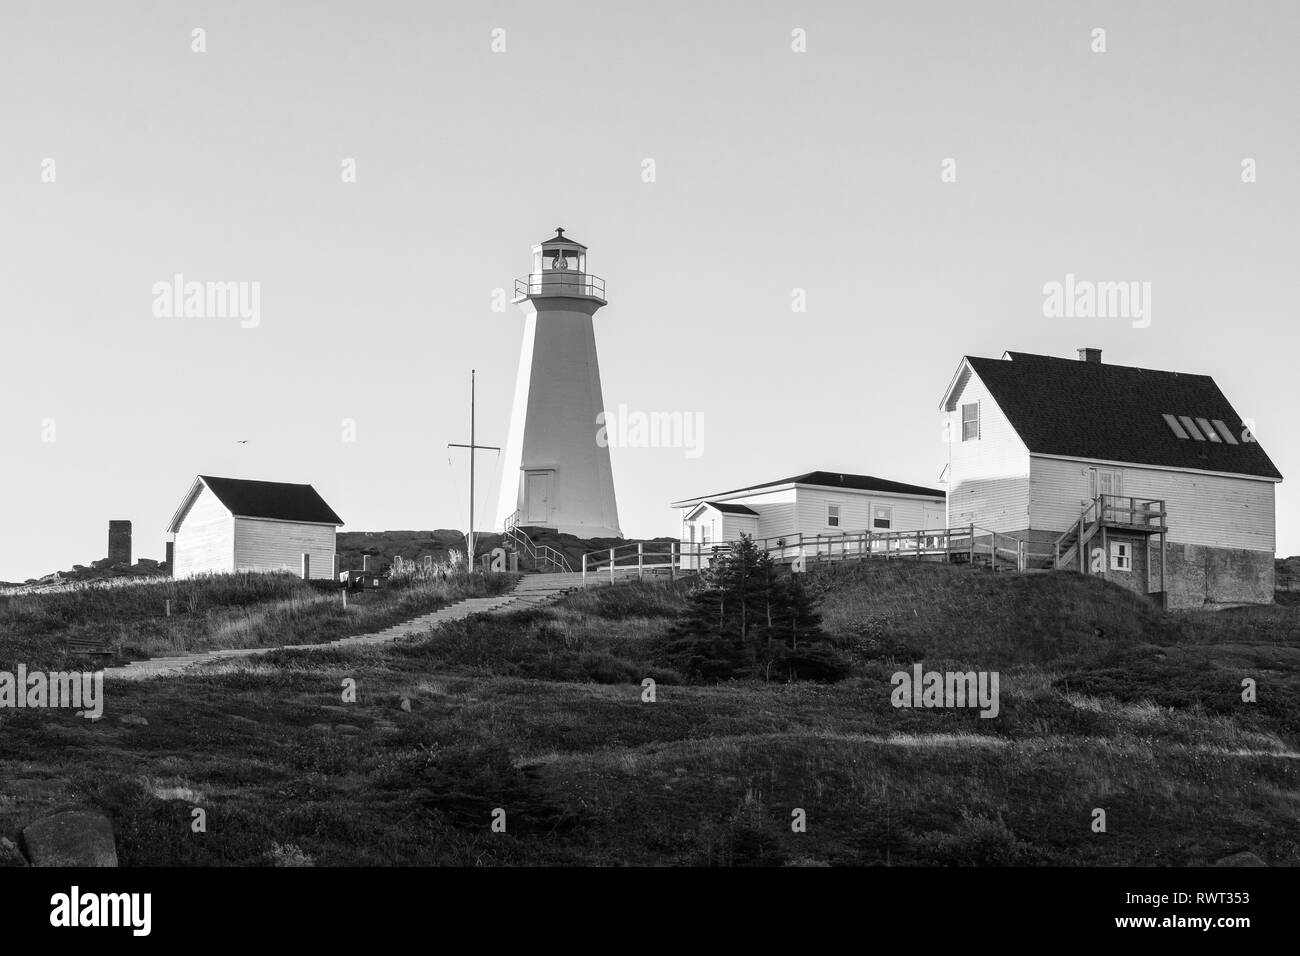 Sunrise at Cape Spear, the eastern most point in North America. - Stock Image